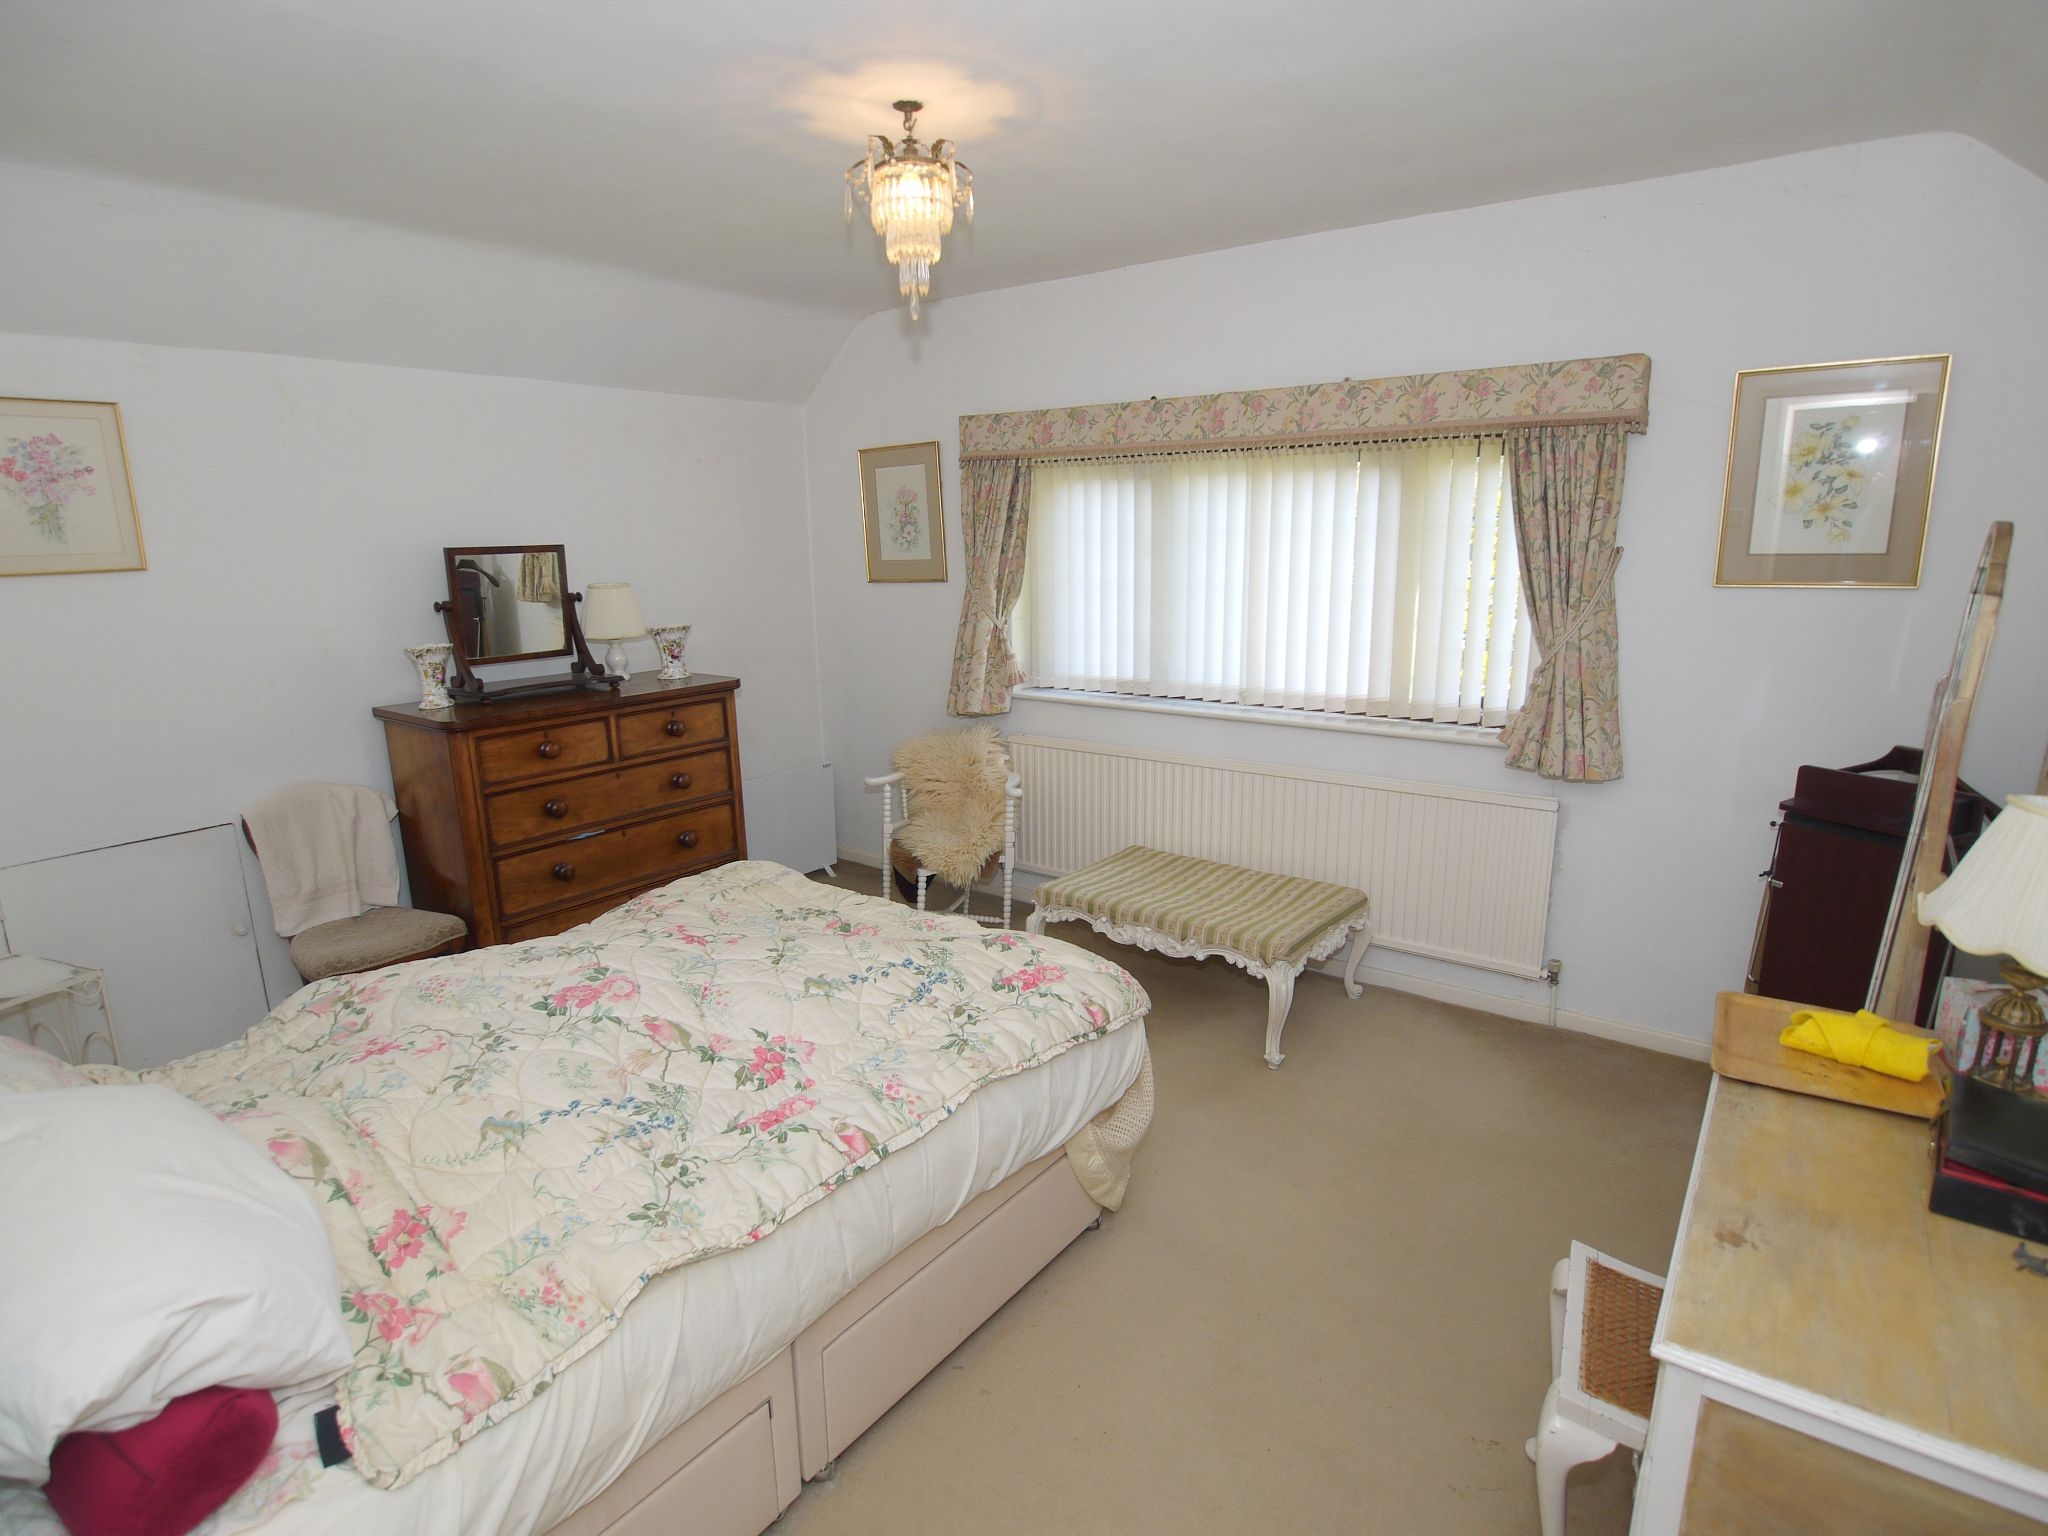 3 bedroom detached house Sold in Sevenoaks - Photograph 5